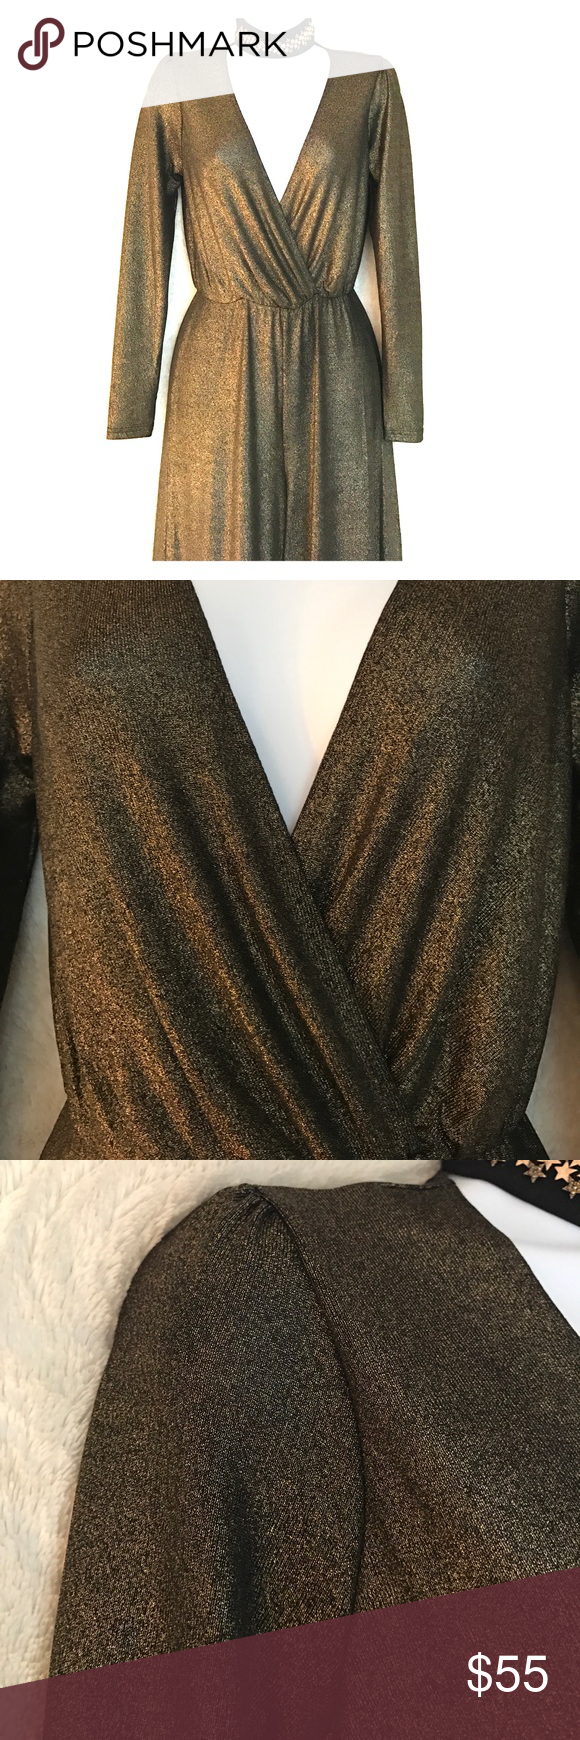 """Disco 70s Gold Bronze Jumpsuit So disco! I love this jumpsuit! It's going to be hard to part with so I'm firm on the price. Just promise me if you buy it, you'll dance in it. Bc that's what I wanted to do but never had the chance. Retro. Shimmery. Gold! Awesome! Stretchy! Measurements -15"""" from shoulder to where the waist is cinched. It's 39"""" from waist to hem. Inseam, crotch to hem is 28.5"""". Entire jumpsuit from shoulder to hem is 54"""". Oh My Love Other"""